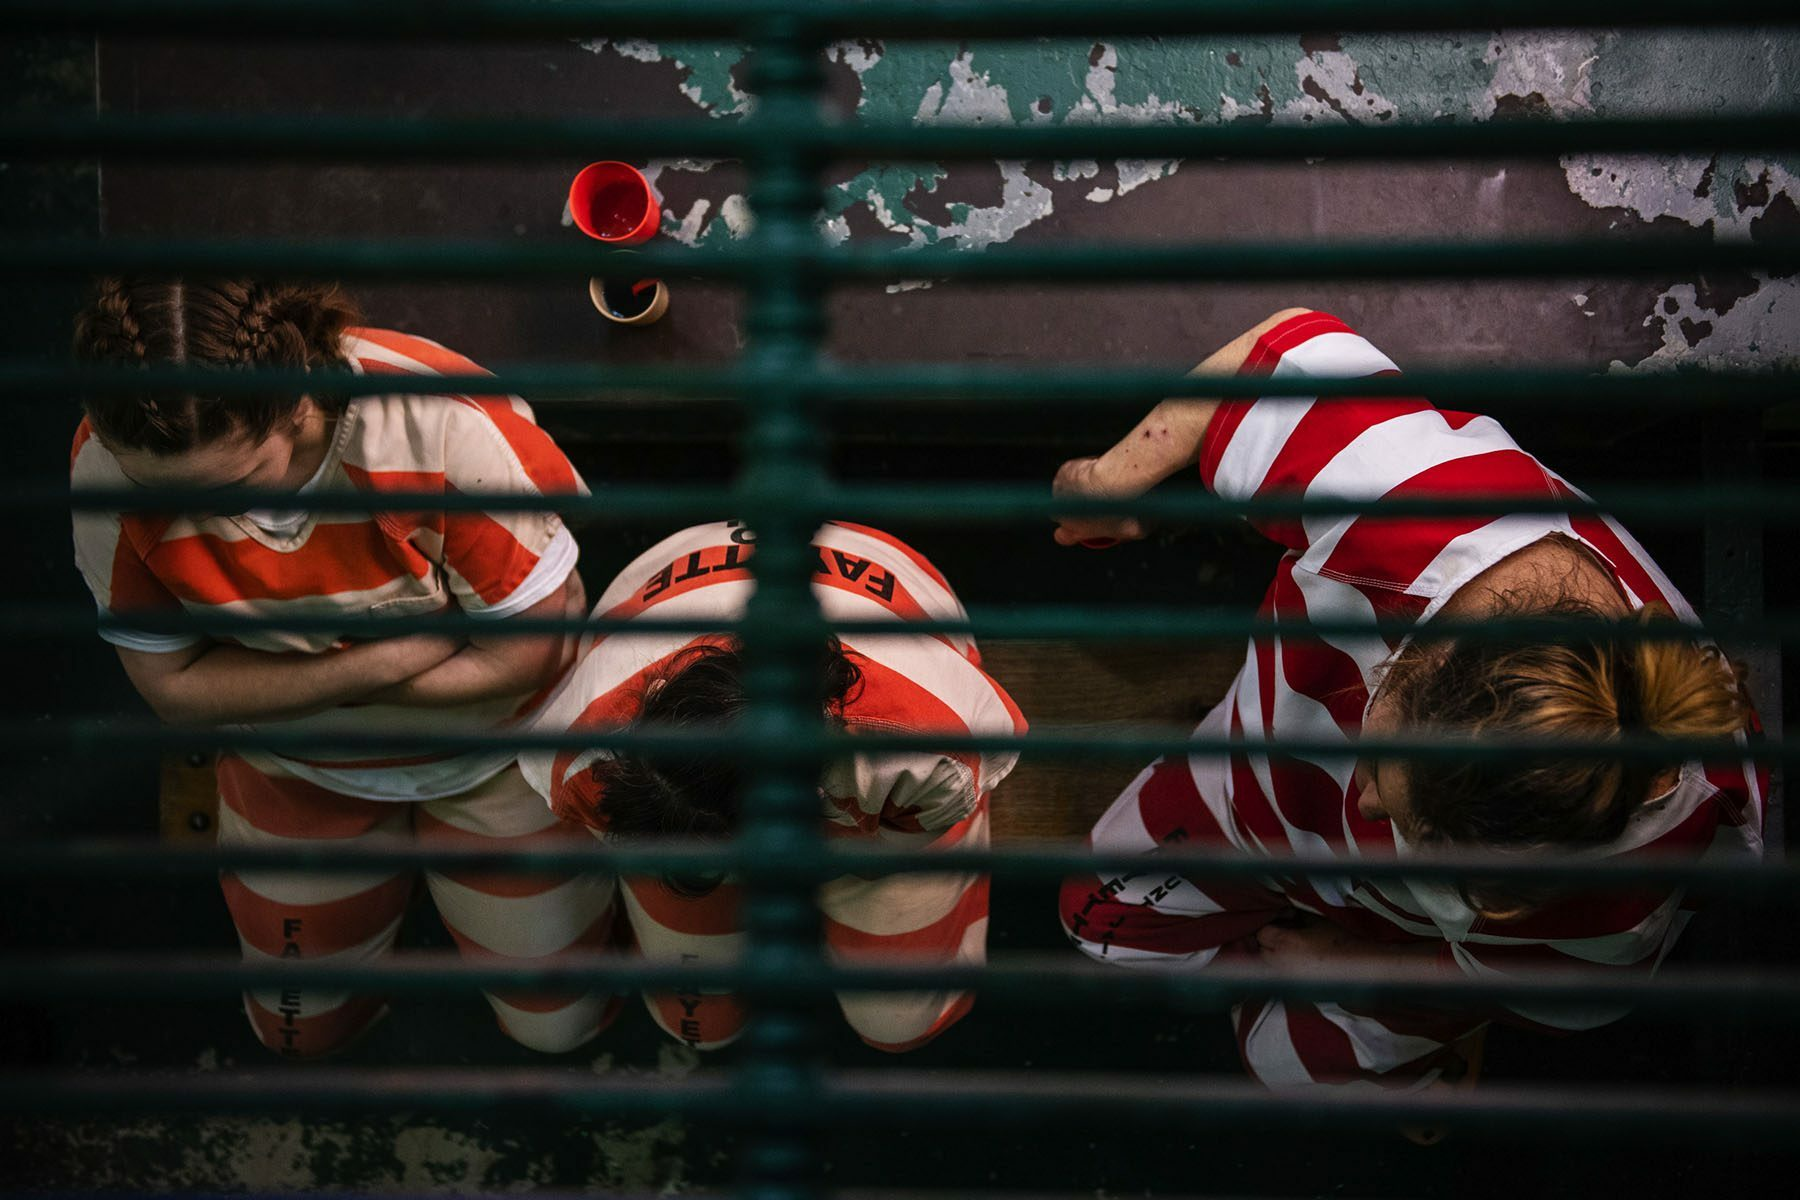 Three female inmates wearing orange and white striped prison uniforms sit on a bench.